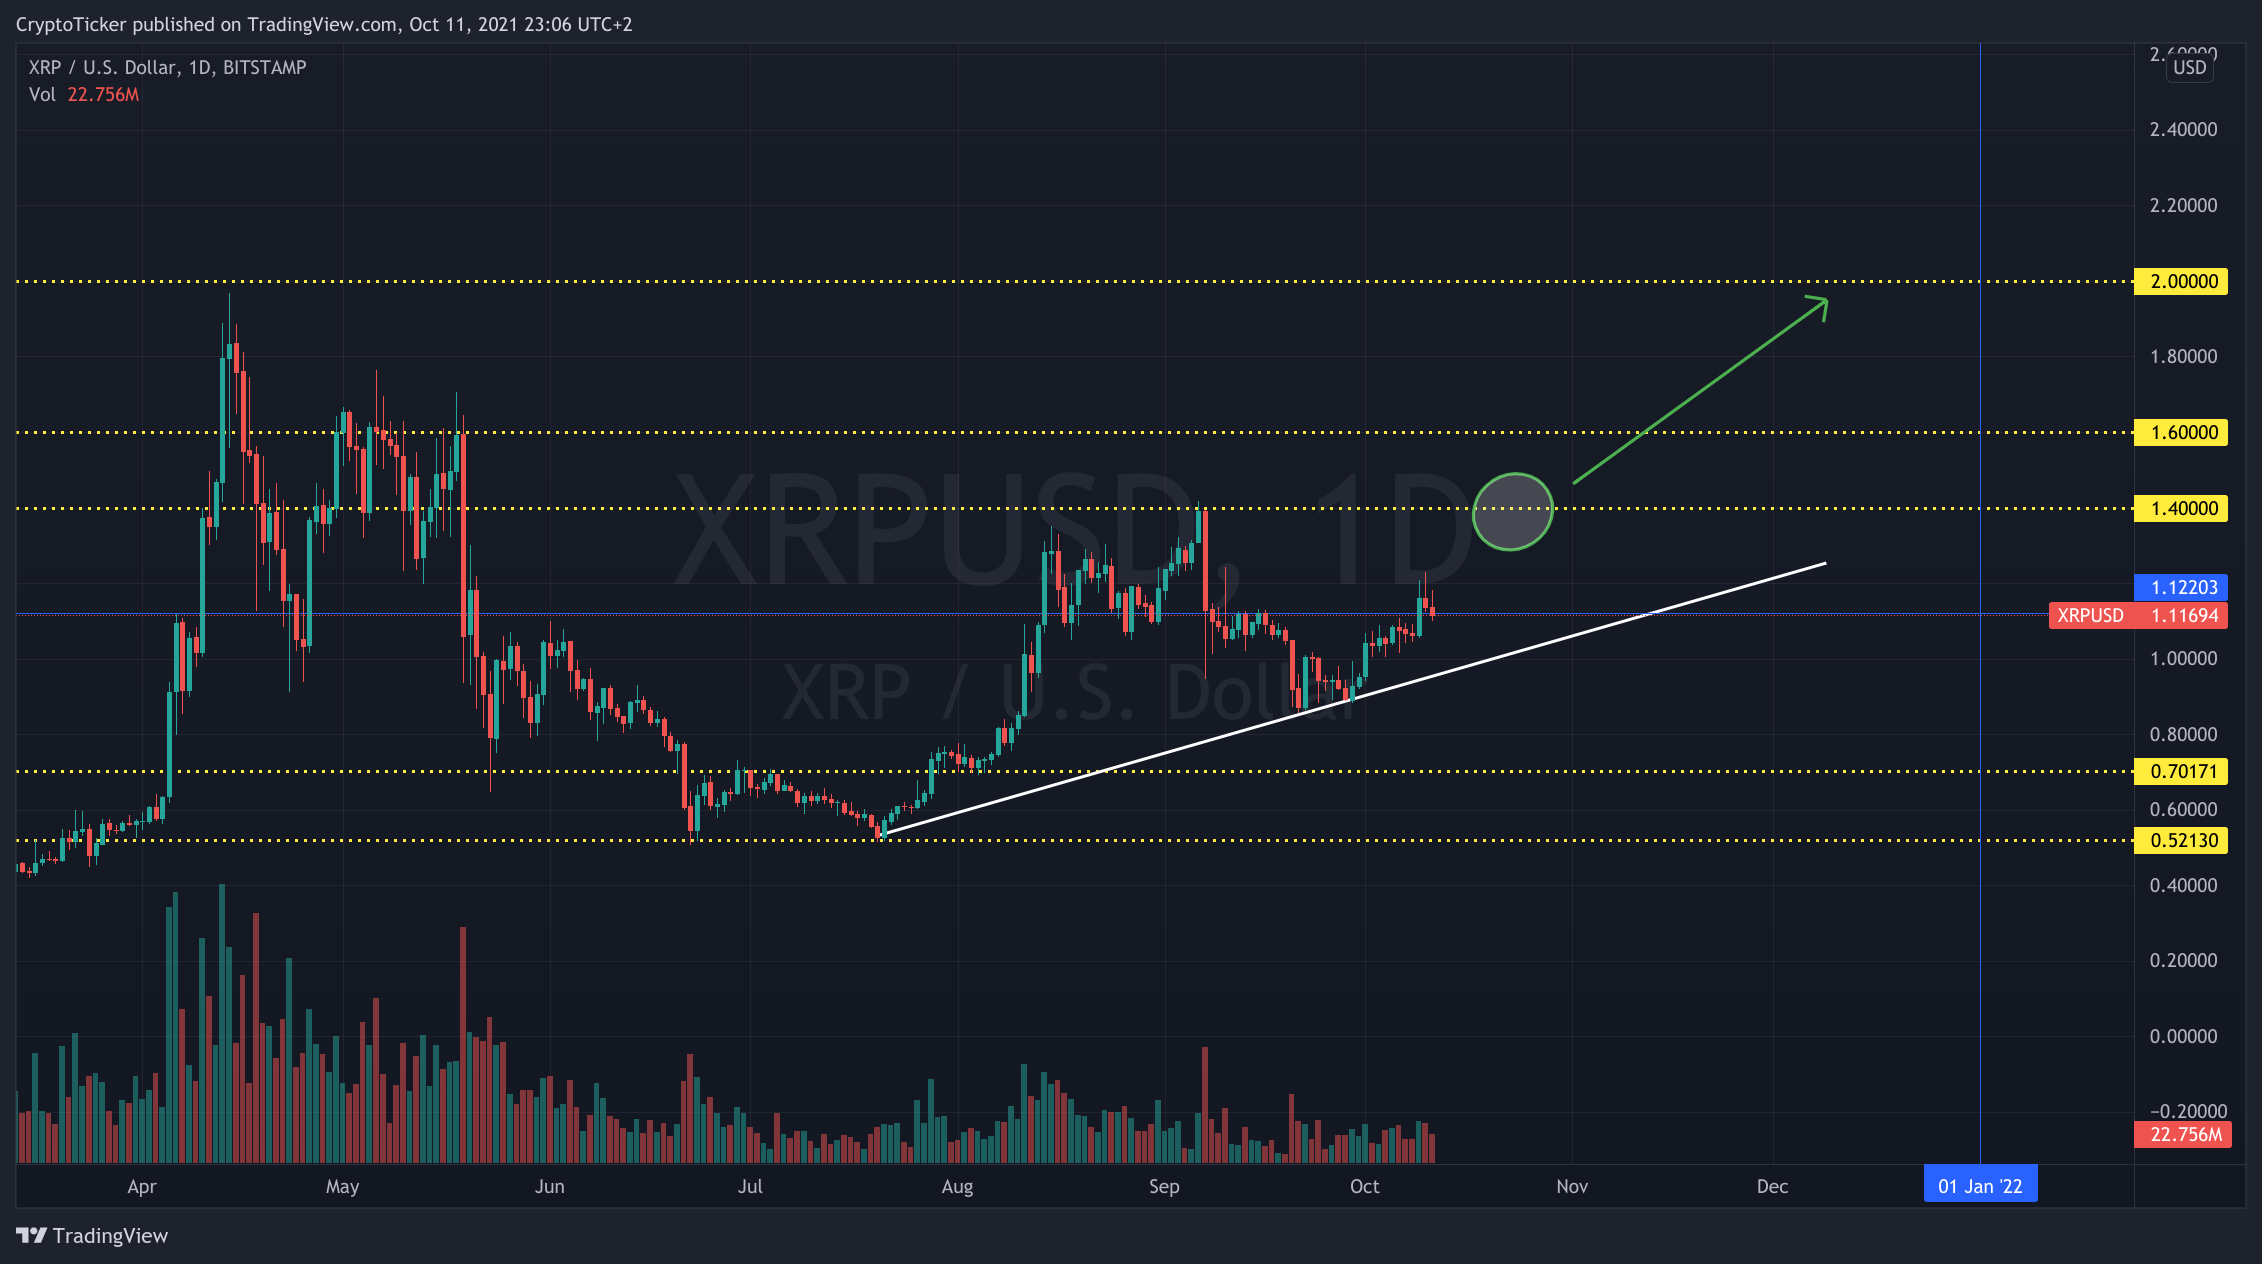 XRP/USD 1-day chart showing the potential projection of XRP prices